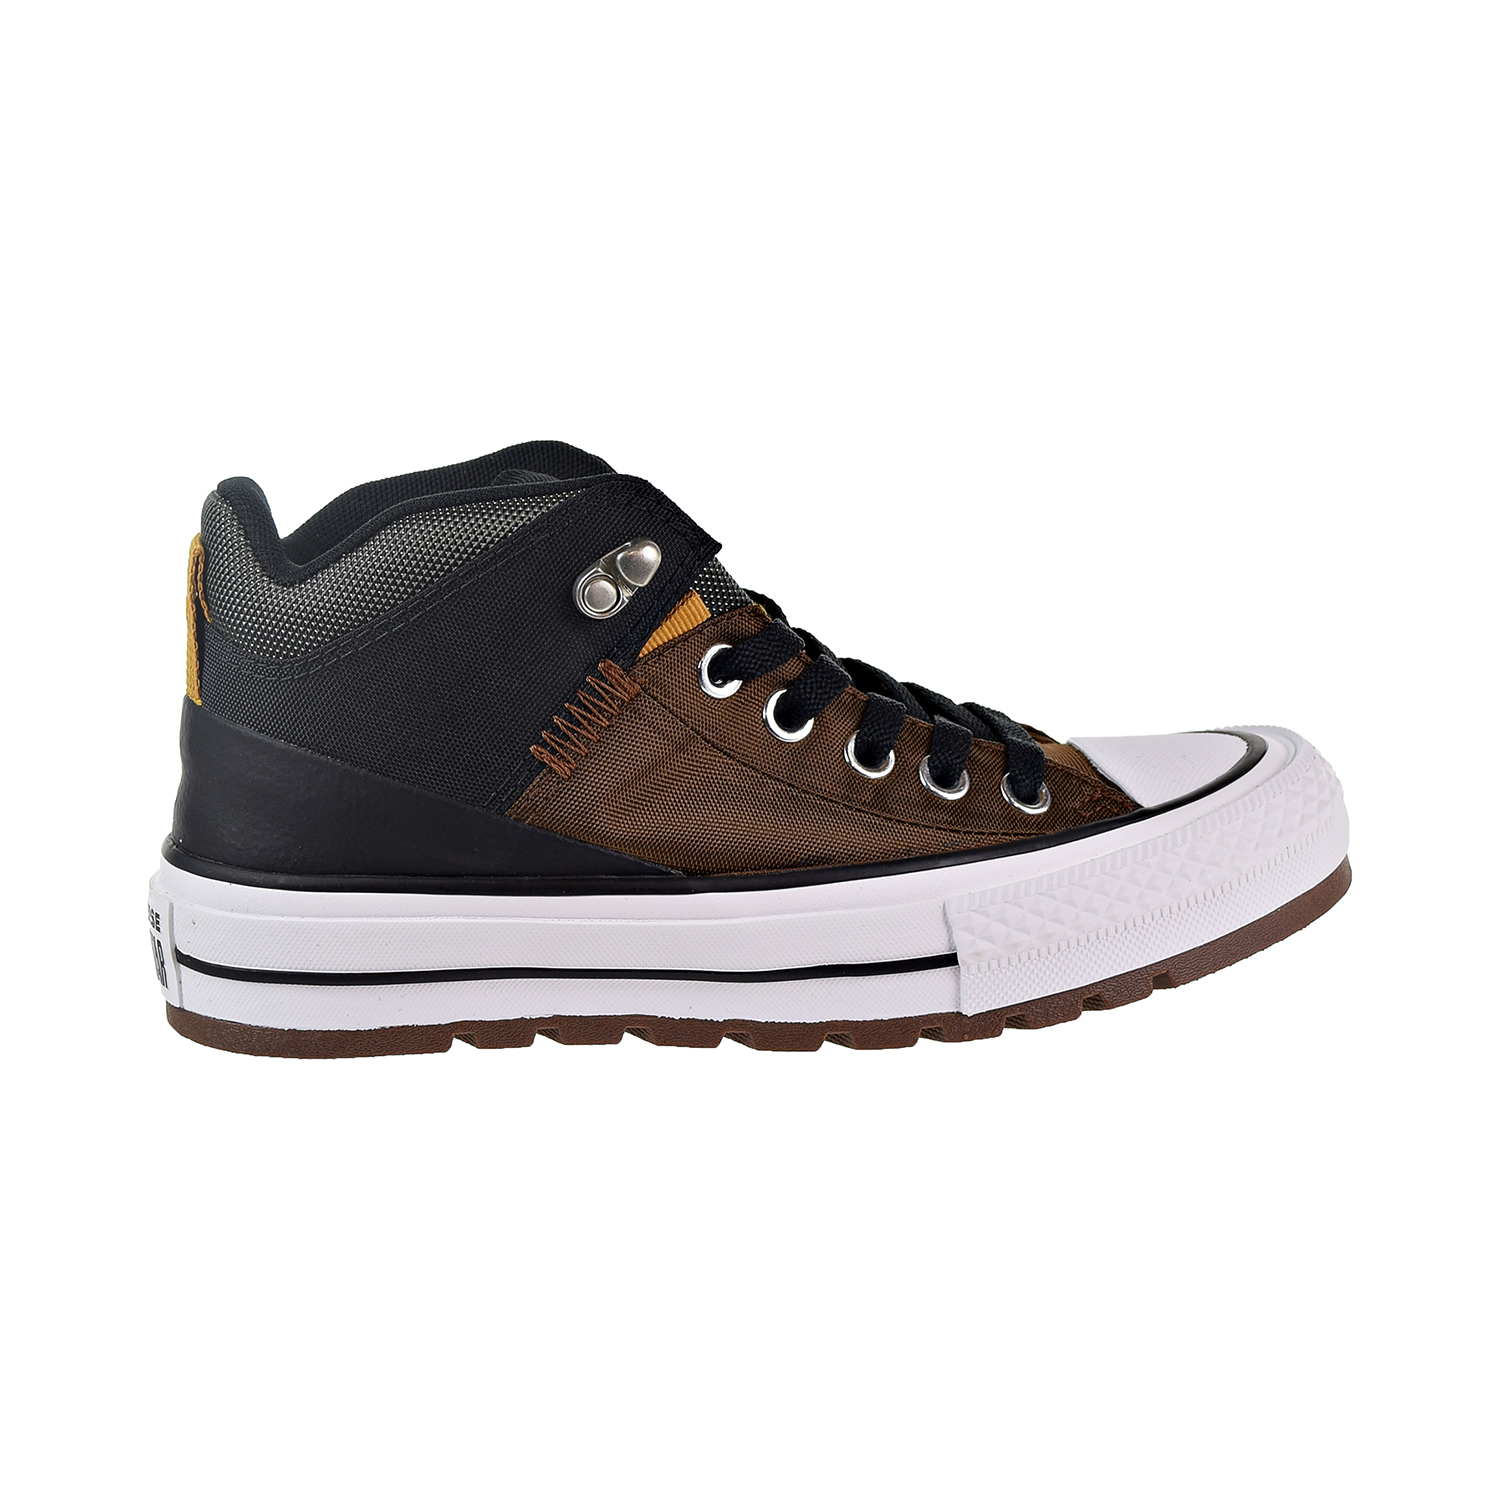 Details about Converse Chuck All Star Street Big Kids' Men's Shoes Chestnut Brown 161469C